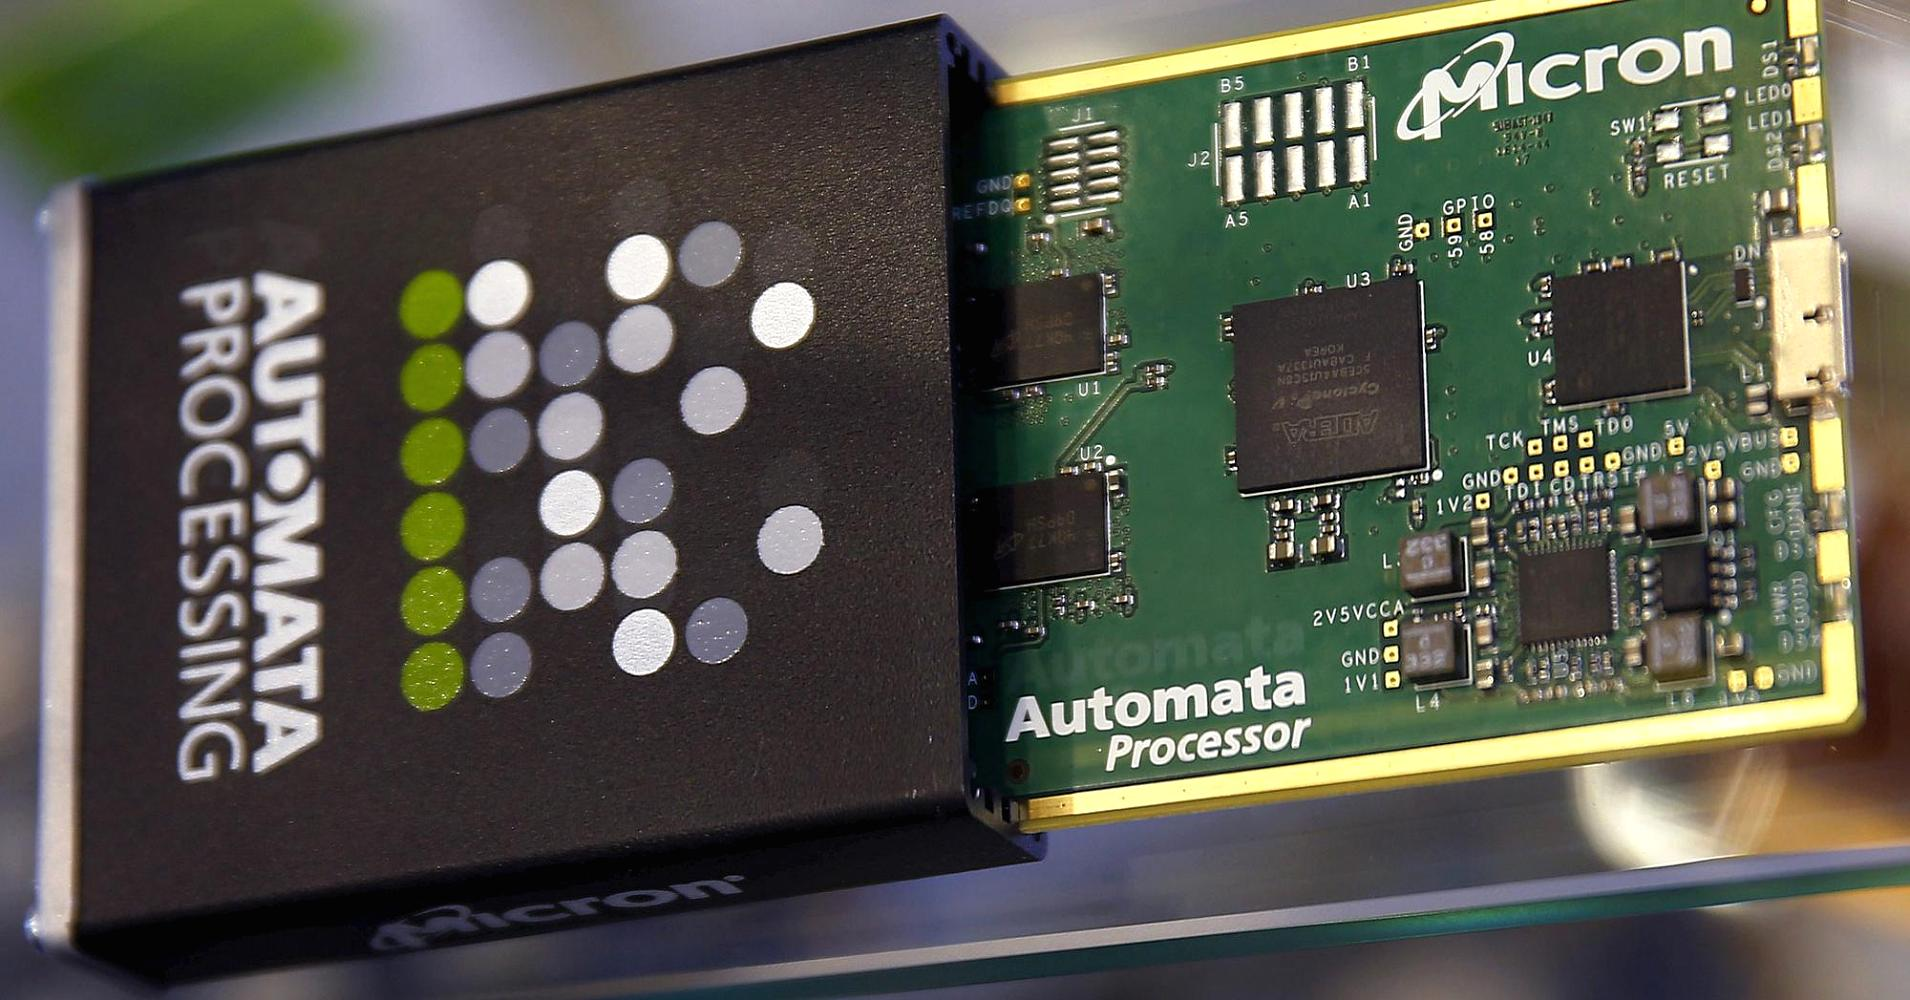 Chip stocks like Broadcom and Micron could see a boost from Tuesday's Apple event